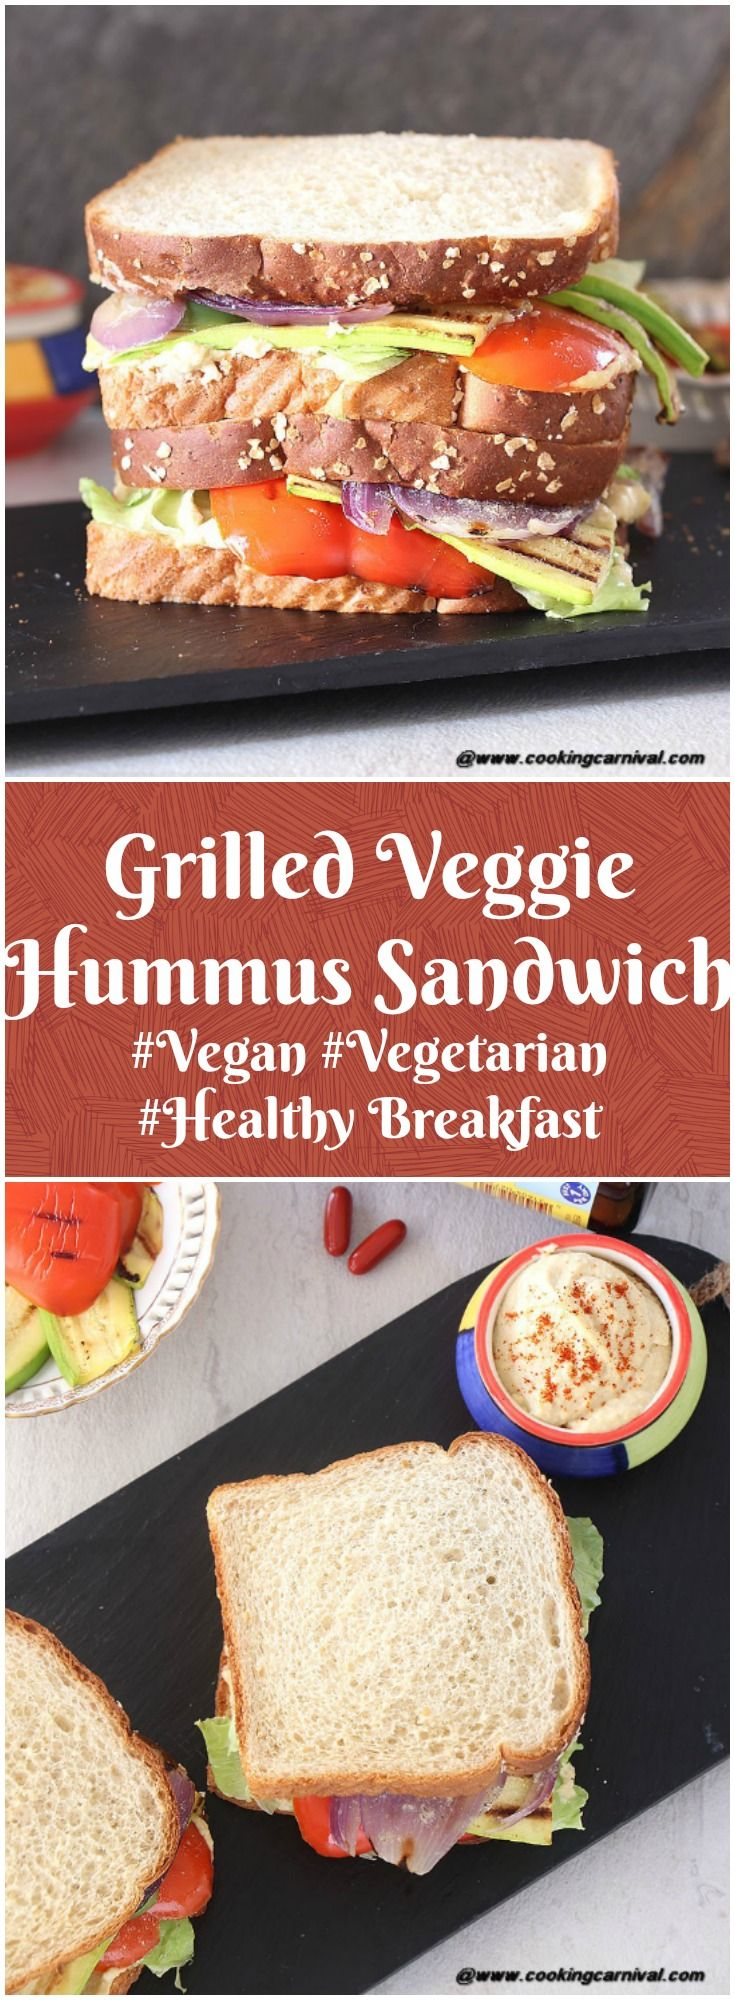 My day start with healthy breakfast. I love to make different types of sandwiches and quesadilla with lots of veggies for the breakfast. One of them is Grilled Veggie Hummus Sandwich. So my today's recipe is Grilled Veggie Hummus Sandwich.  Grilled Veggie Hummus Sandwich is perfect way to start your day. It is so flavorful, healthy and scrumptious. It makes perfect heart-healthy Vegetarian breakfast. #ad #NatureMadePrenatalDHA #CollectiveBias #sandwich #vegan #vegetarian #Breakfast #Healthy